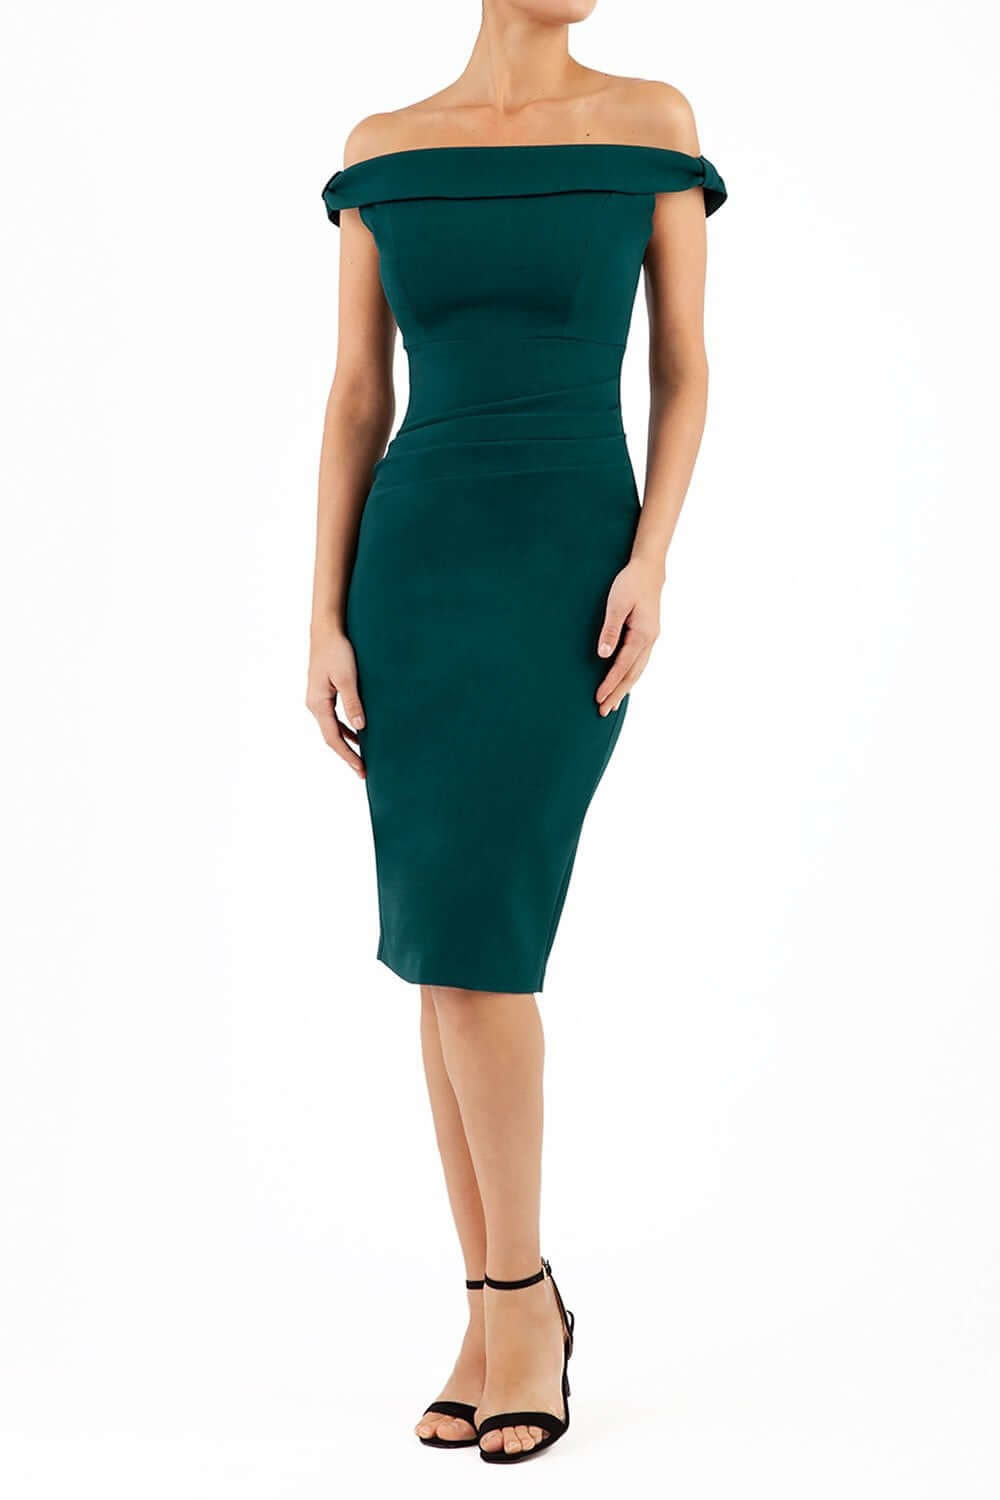 diva-luxury-moss-crepe-cloud-pencil-dress-p827-56824_zoom forest green 1